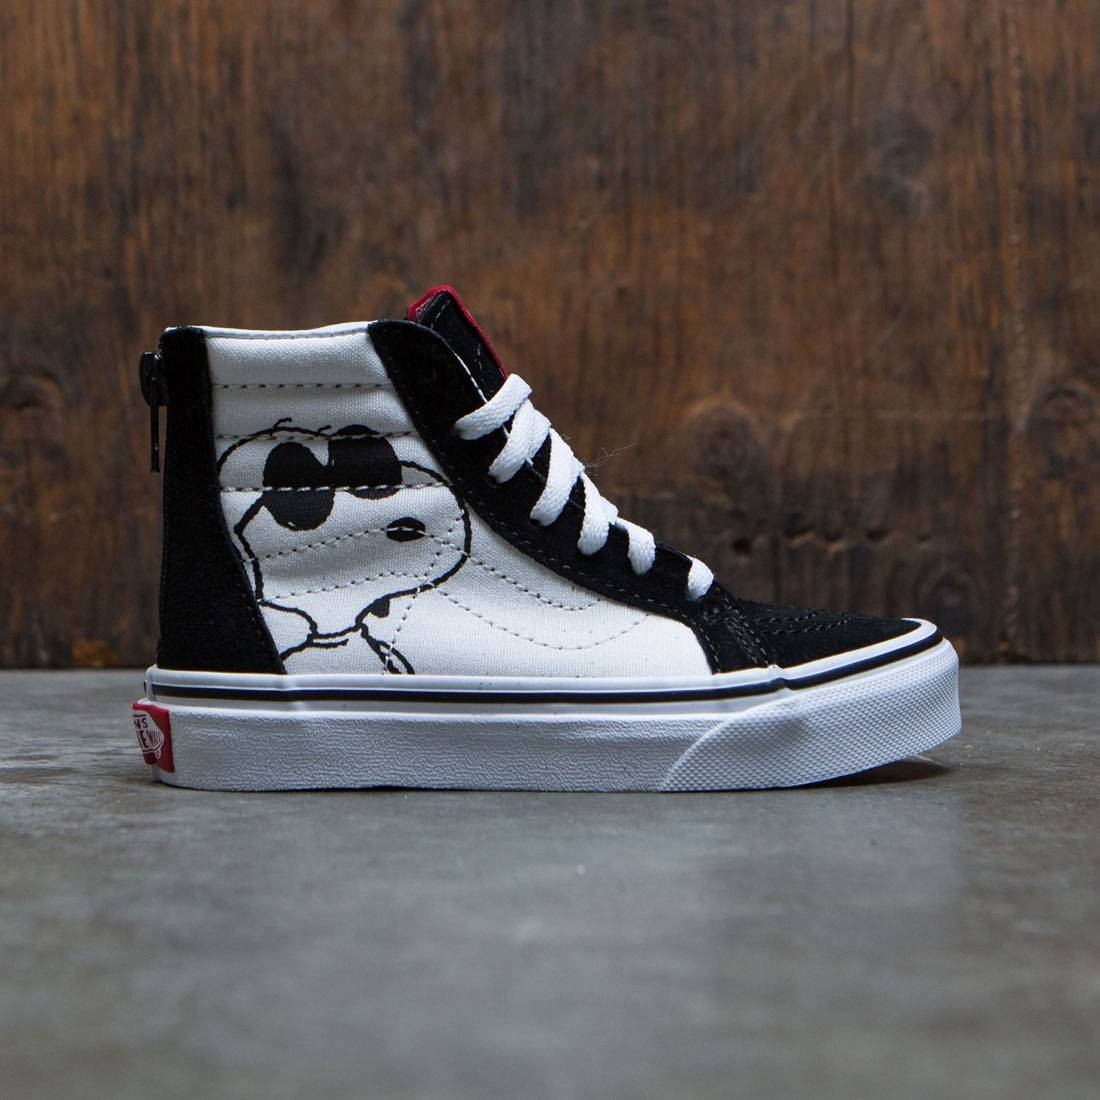 Vans x Peanuts Big Kids Sk8-Hi Zip - Joe Cool black 0725d54d64c9